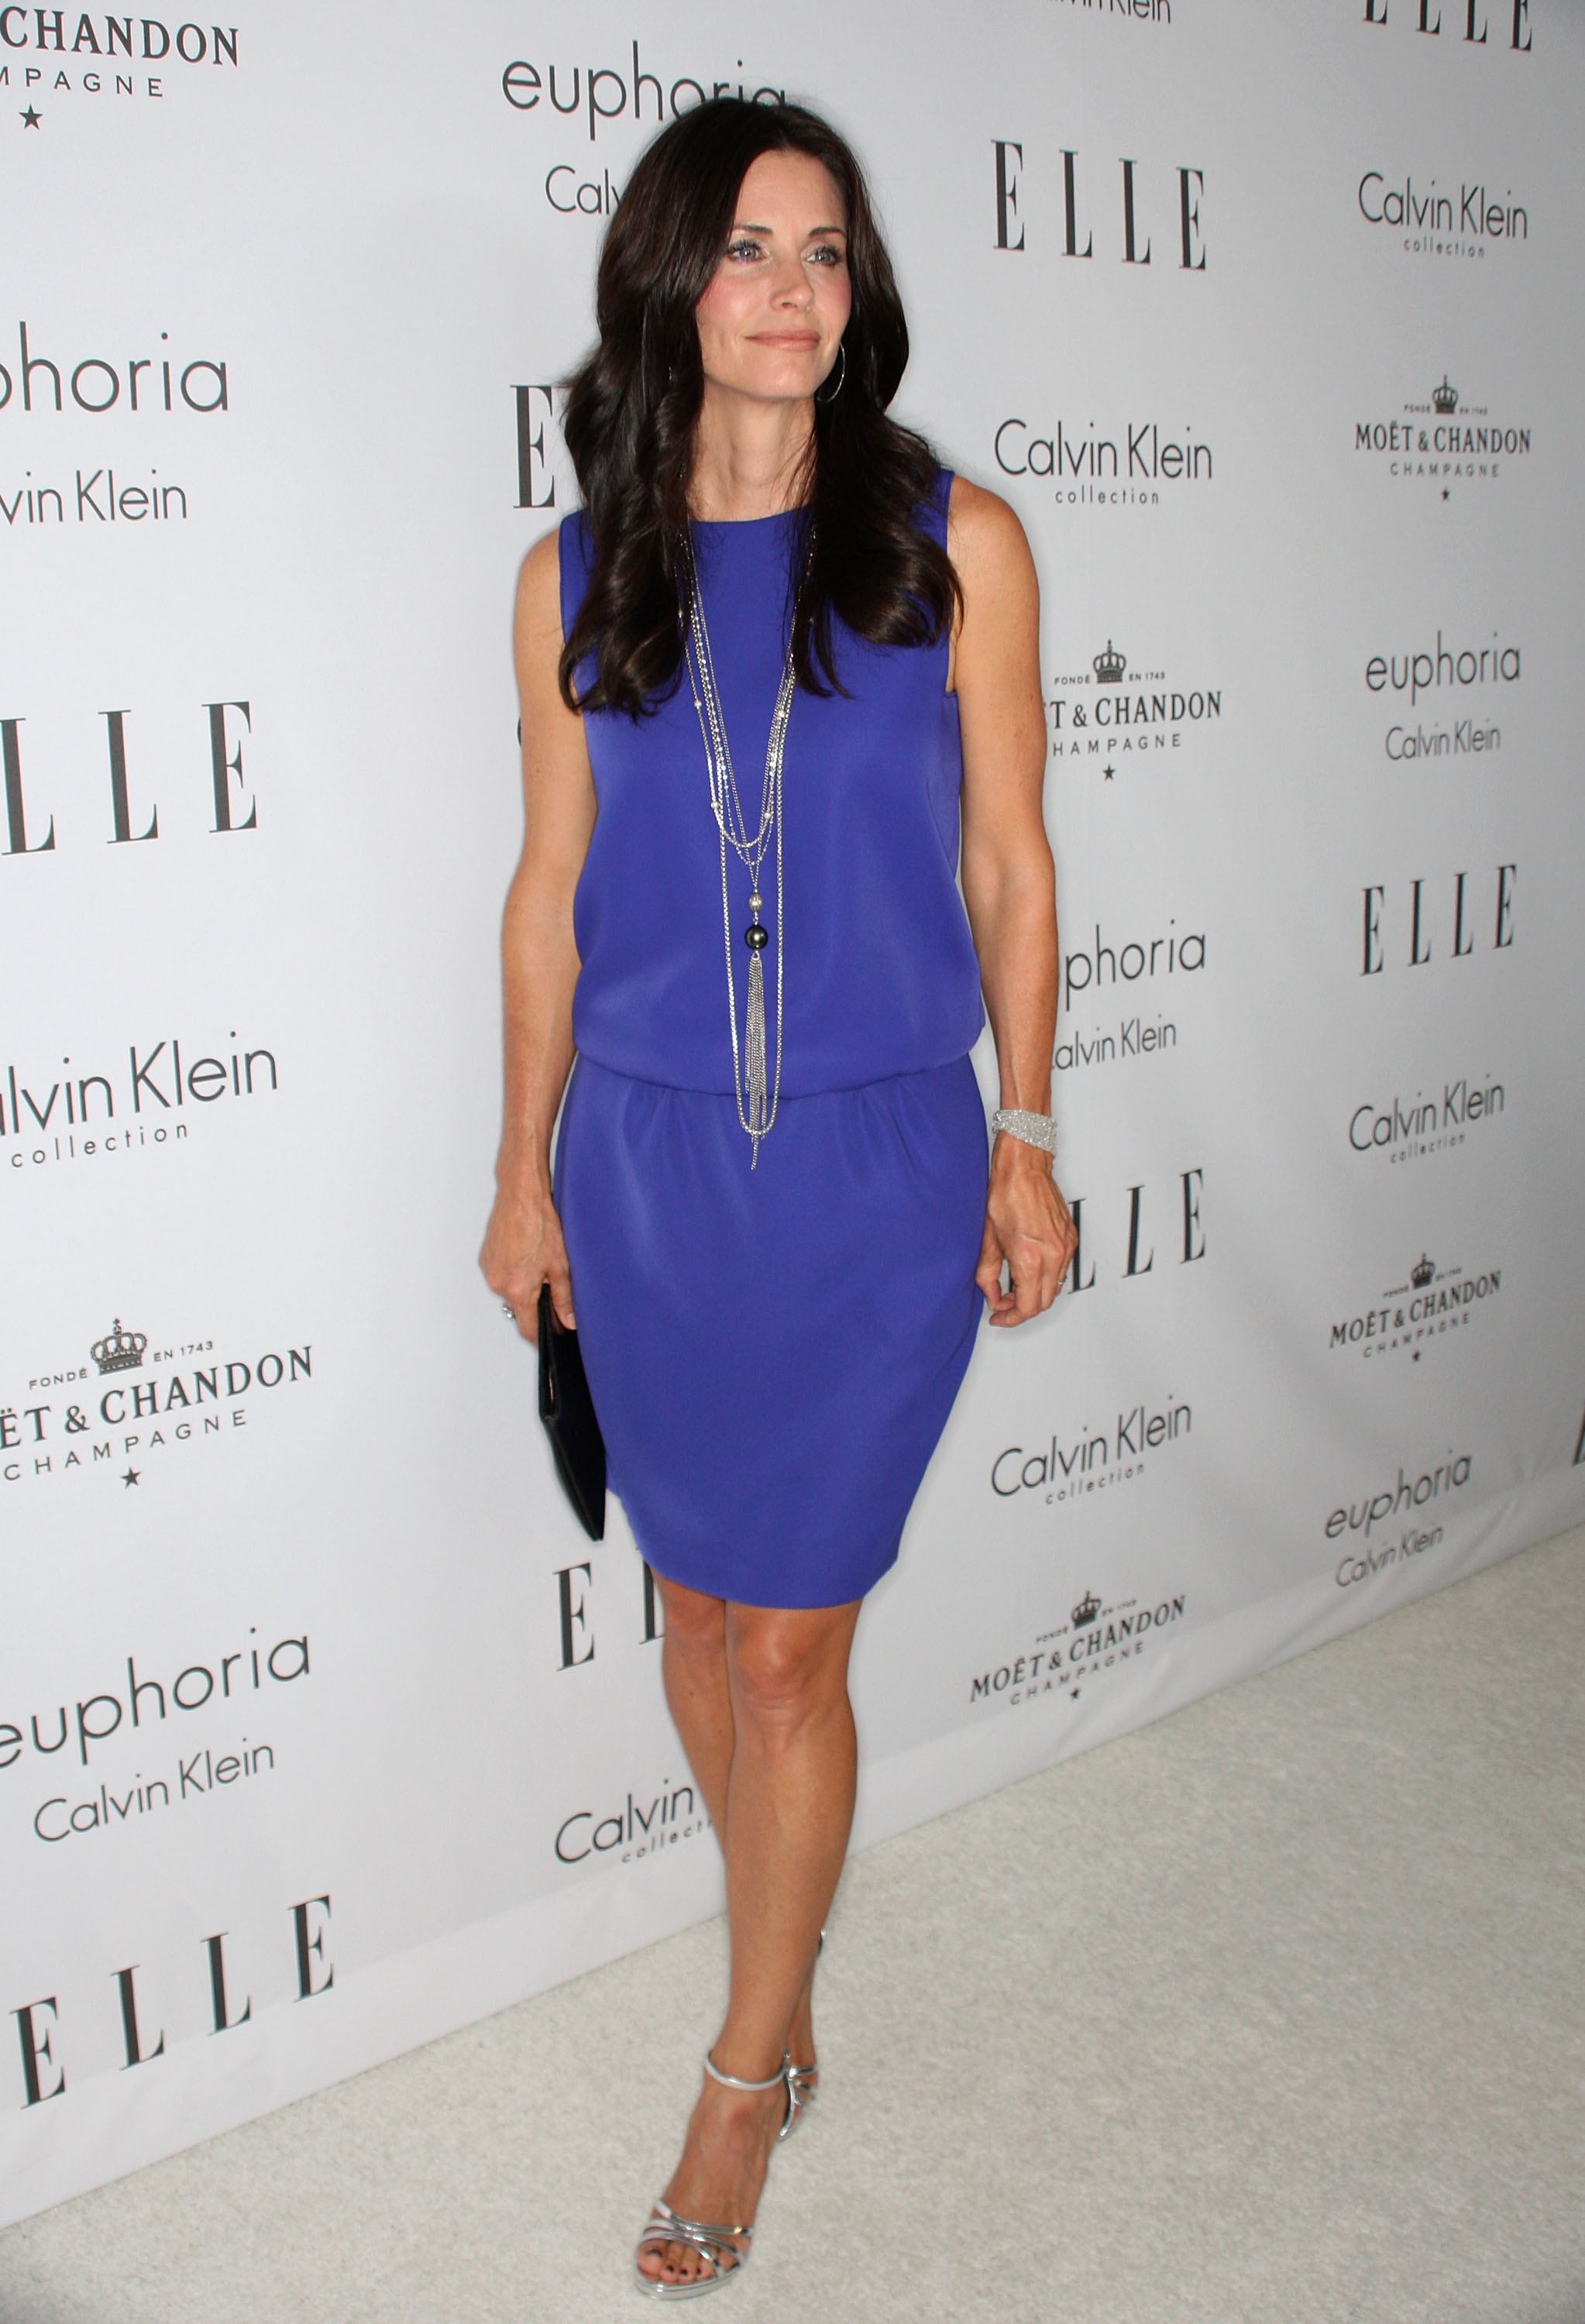 59307_Celebutopia-Courteney_Cox-15th_annual_Women_In_Hollywood_Tribute-01_122_392lo.jpg